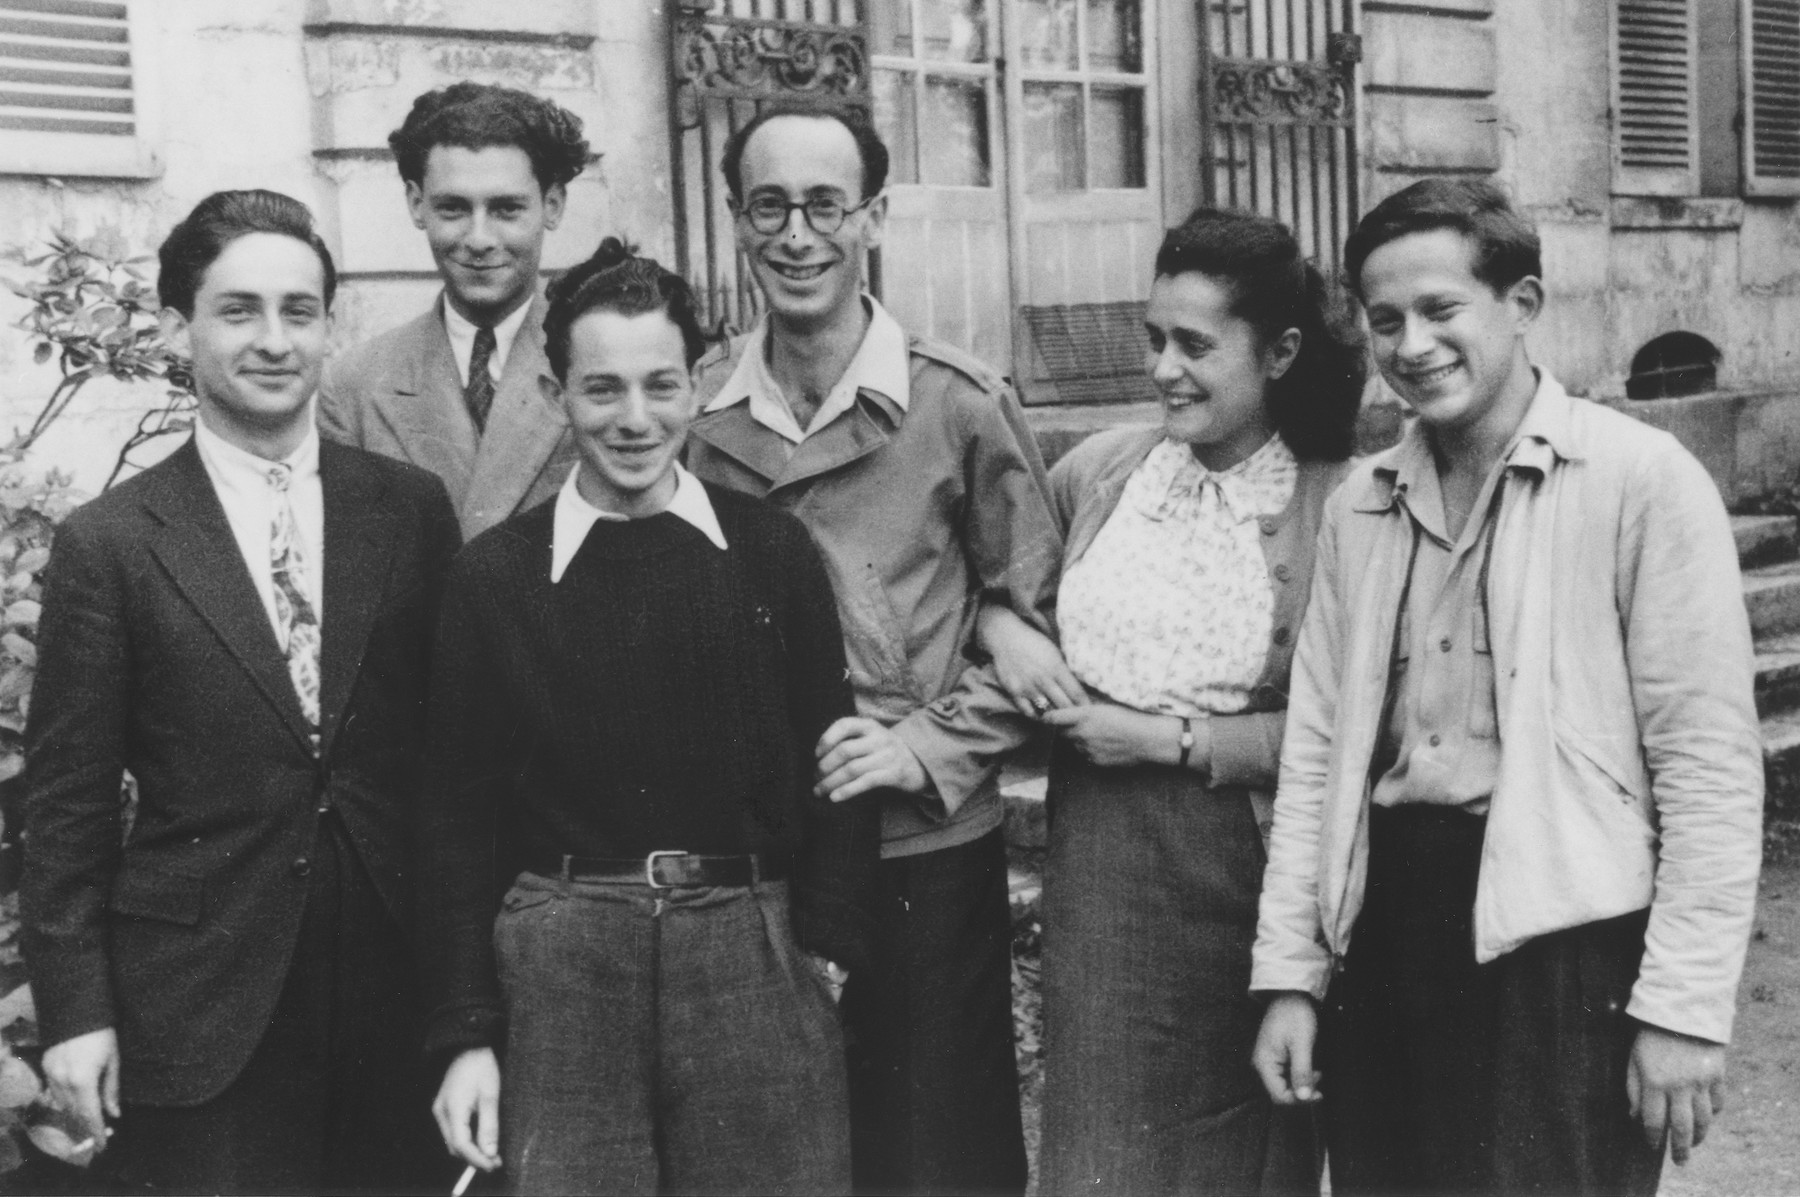 Ernst and Lida Jablonski (center), staff of the Fontenay-aux-Roses children's home, pose with some of the youth who lived there.  Pictured from left to right are Ernst Rosner, Pierre Samuel, Gerard Alexander, Ernst Jablonski, Lida Jablonski and Ossi Goldstein.